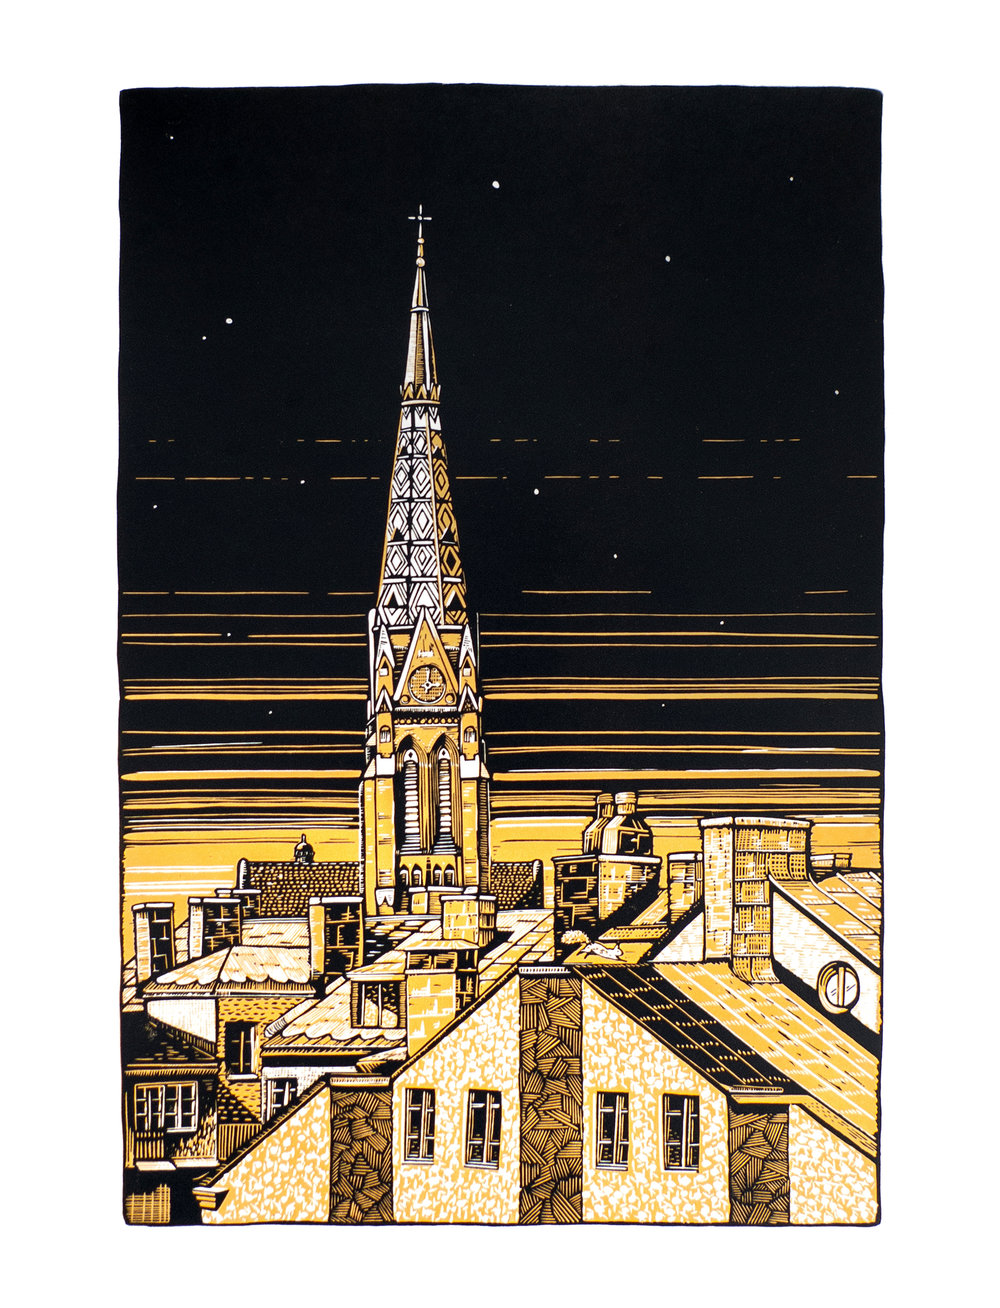 S:t Johannes kyrka , reduction linocut on Hosho paper, 40 x 55 cm. Edition of 10.